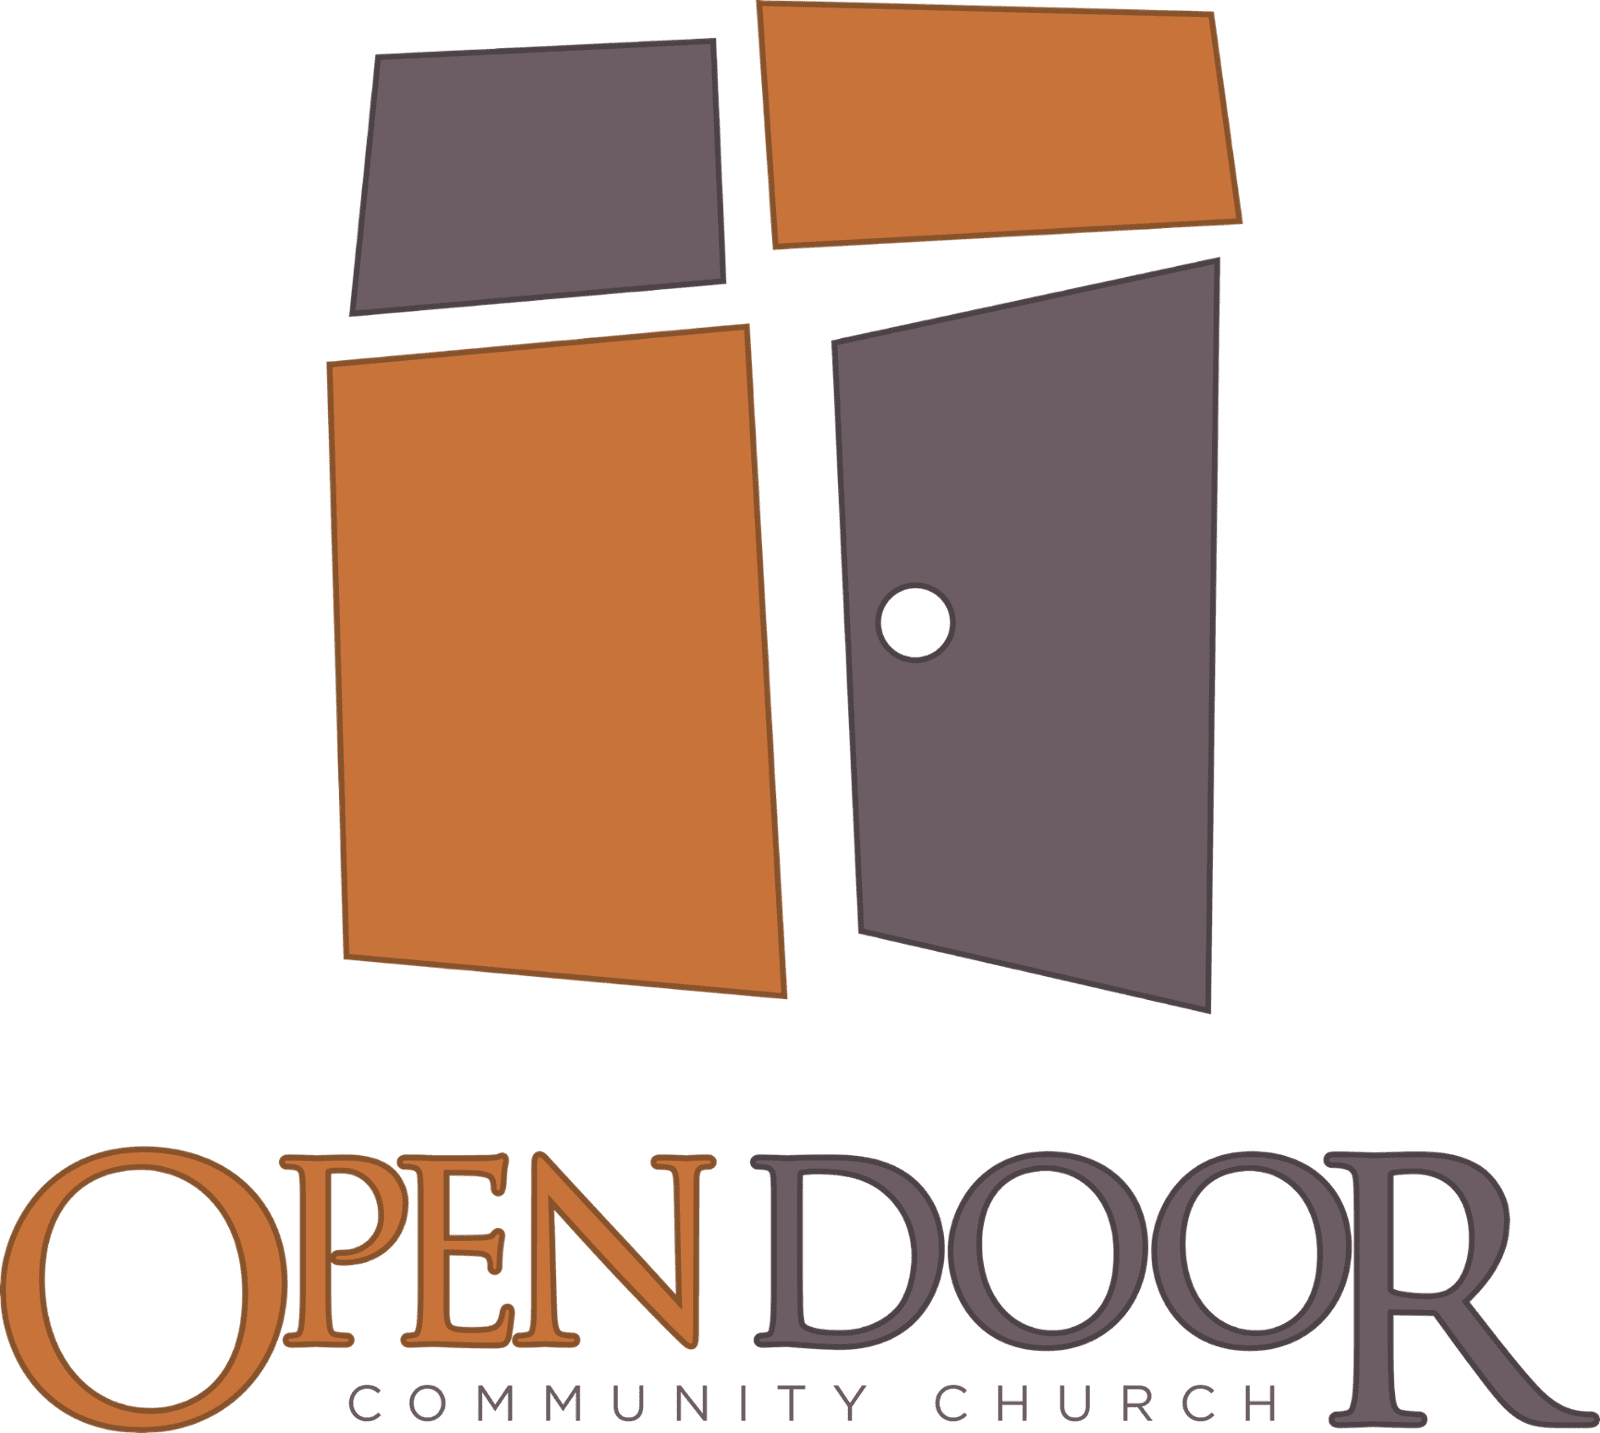 Open Door Community Church